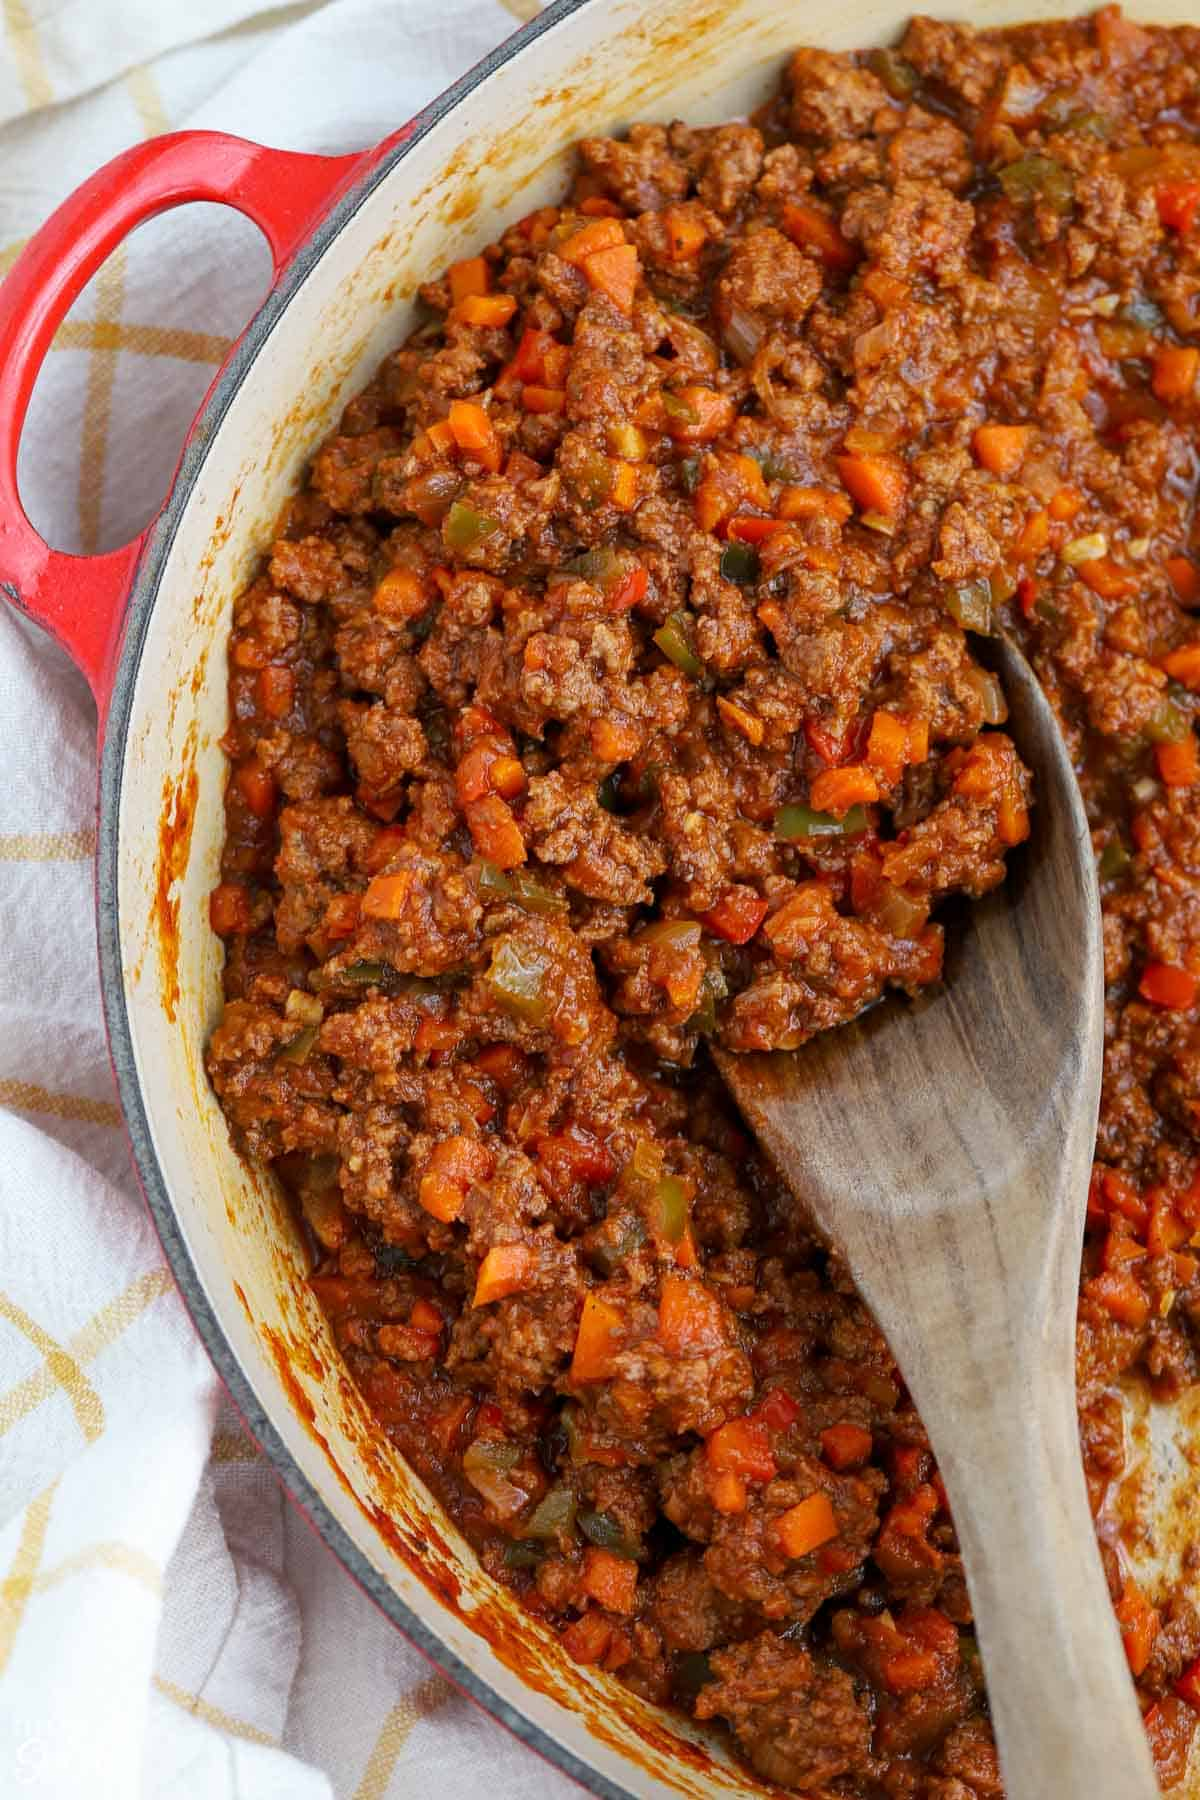 Sloppy joe meat in a pan with a wooden spoon